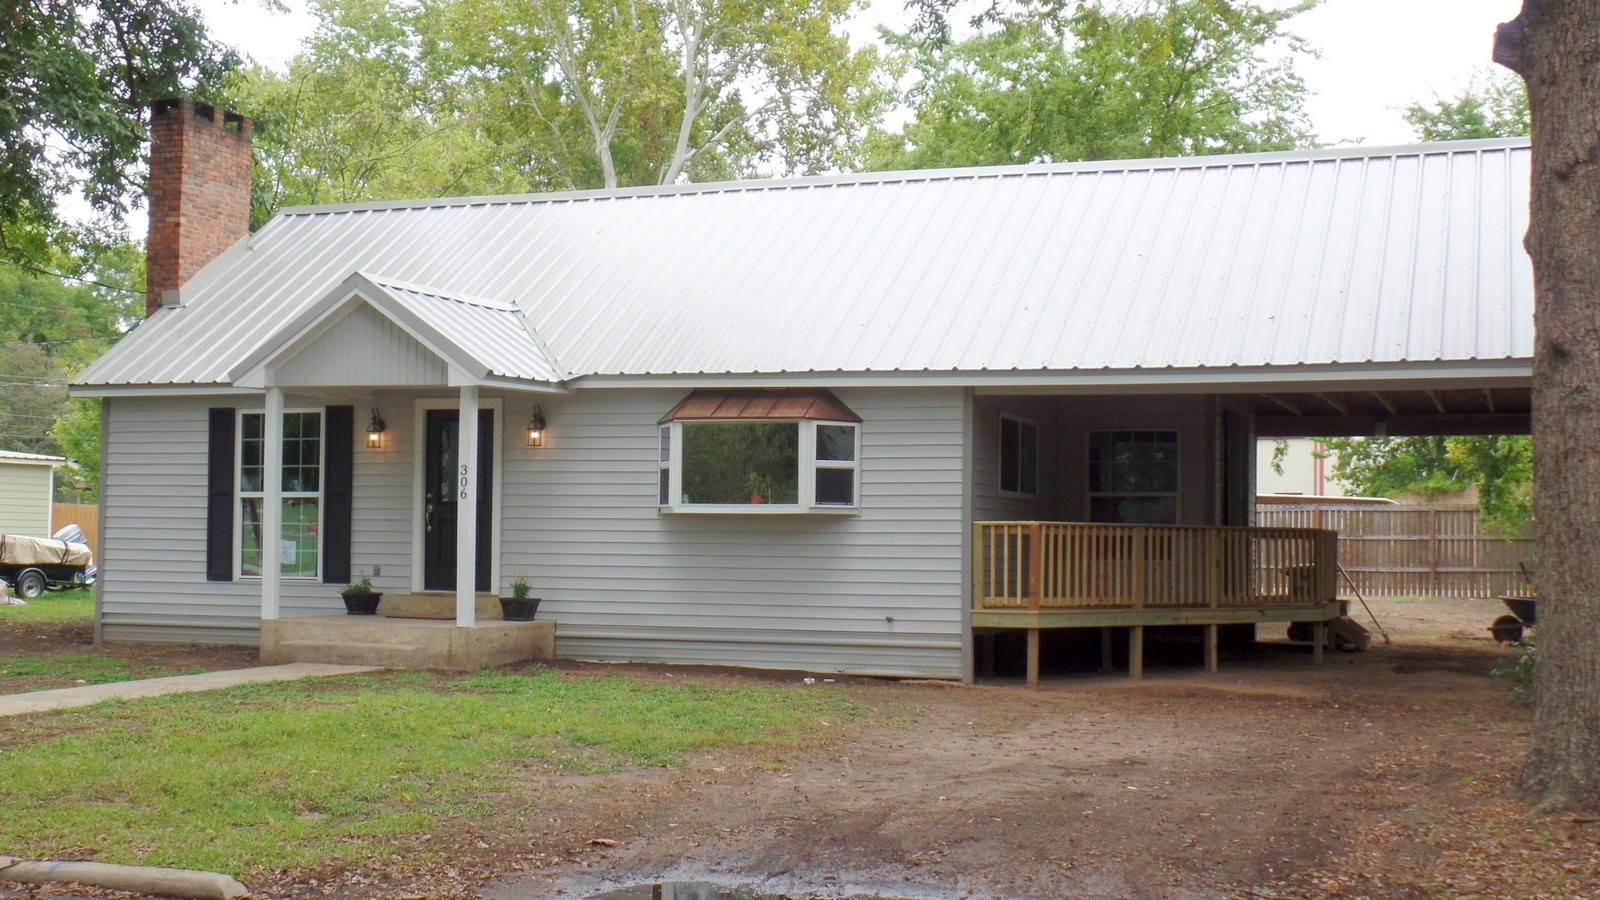 COMPLETE REMODEL EAST TEXAS HOME 3 BEDROOMS 2 1/2 BATHS